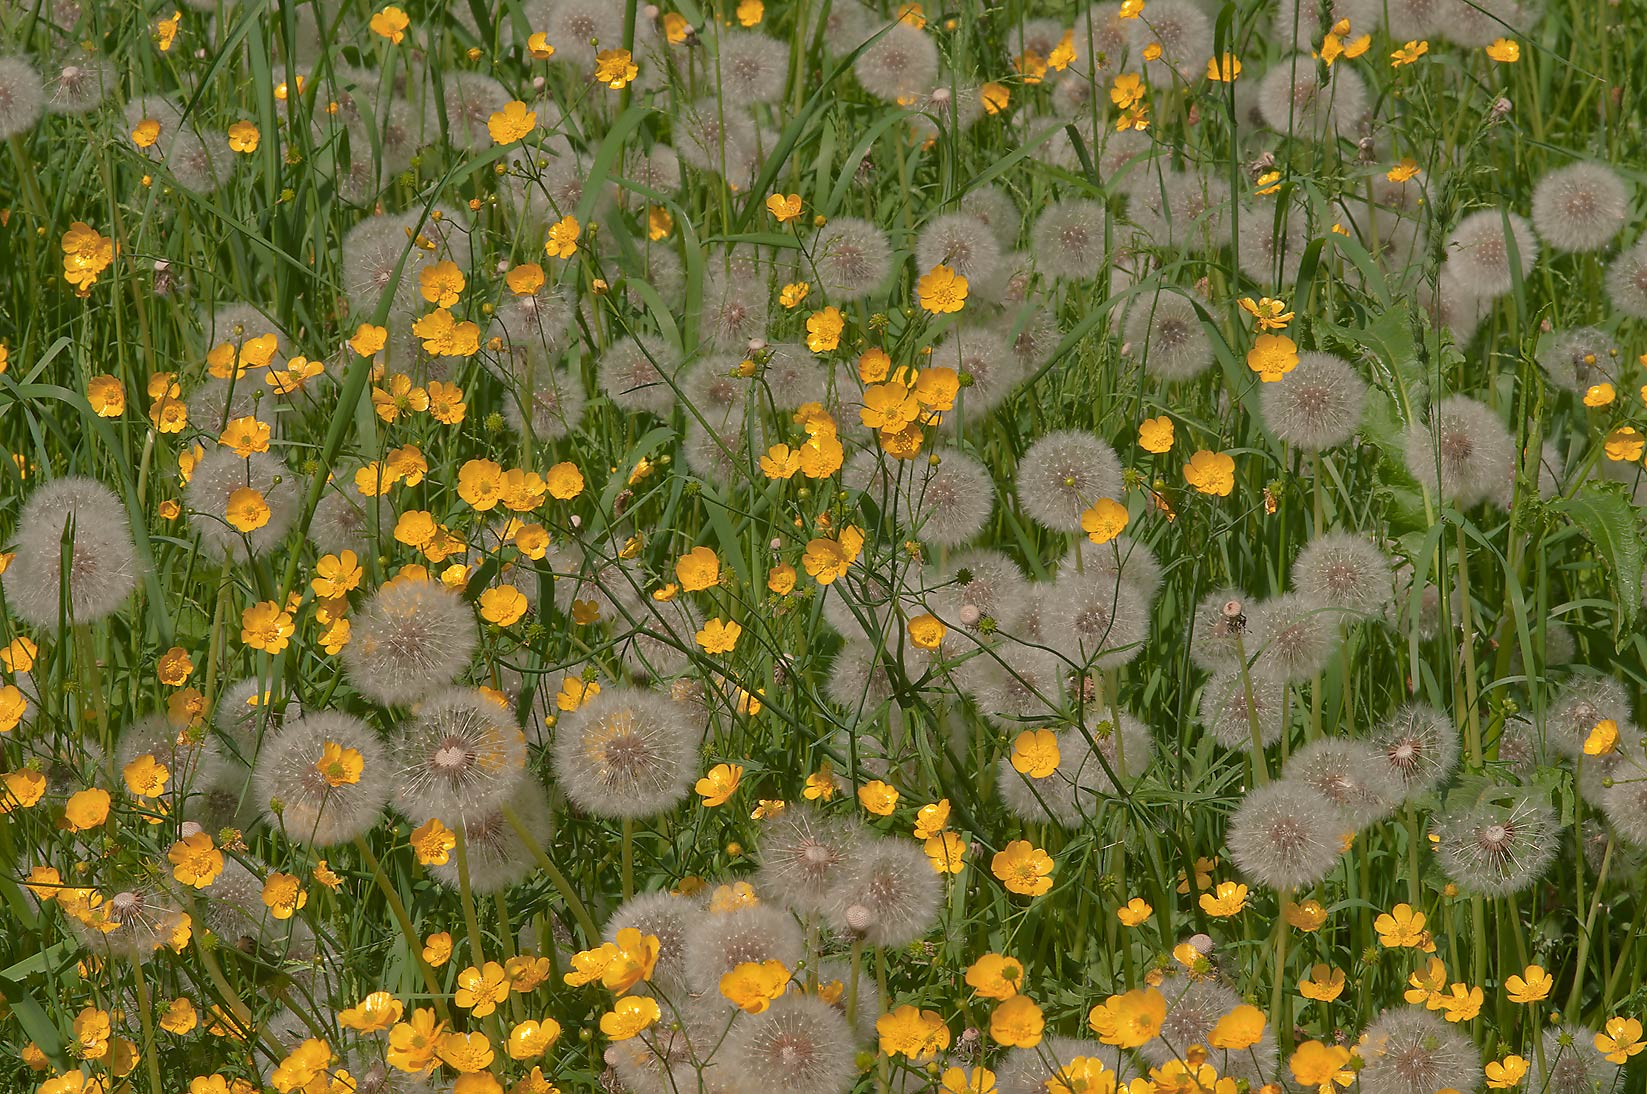 Dandelions and buttercups in Botanic Gardens of...Institute. St.Petersburg, Russia